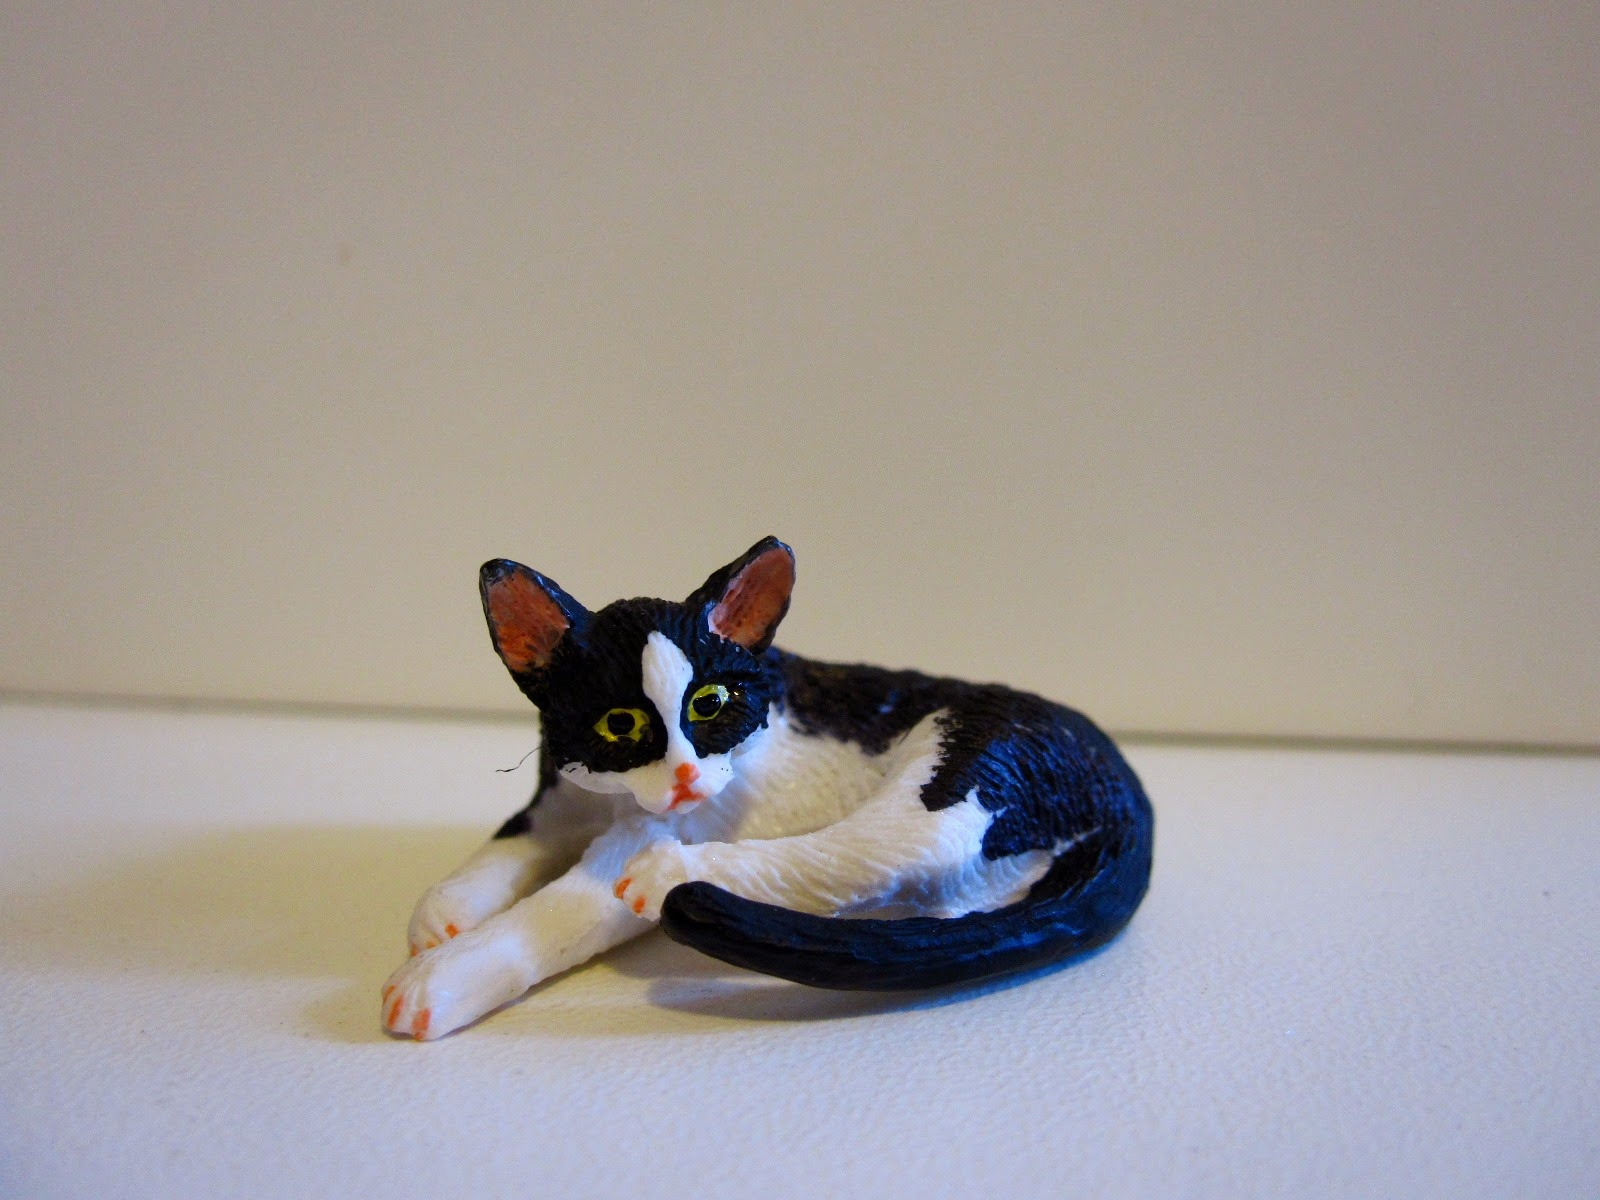 Dolls' house miniature black and white cat, lying down.